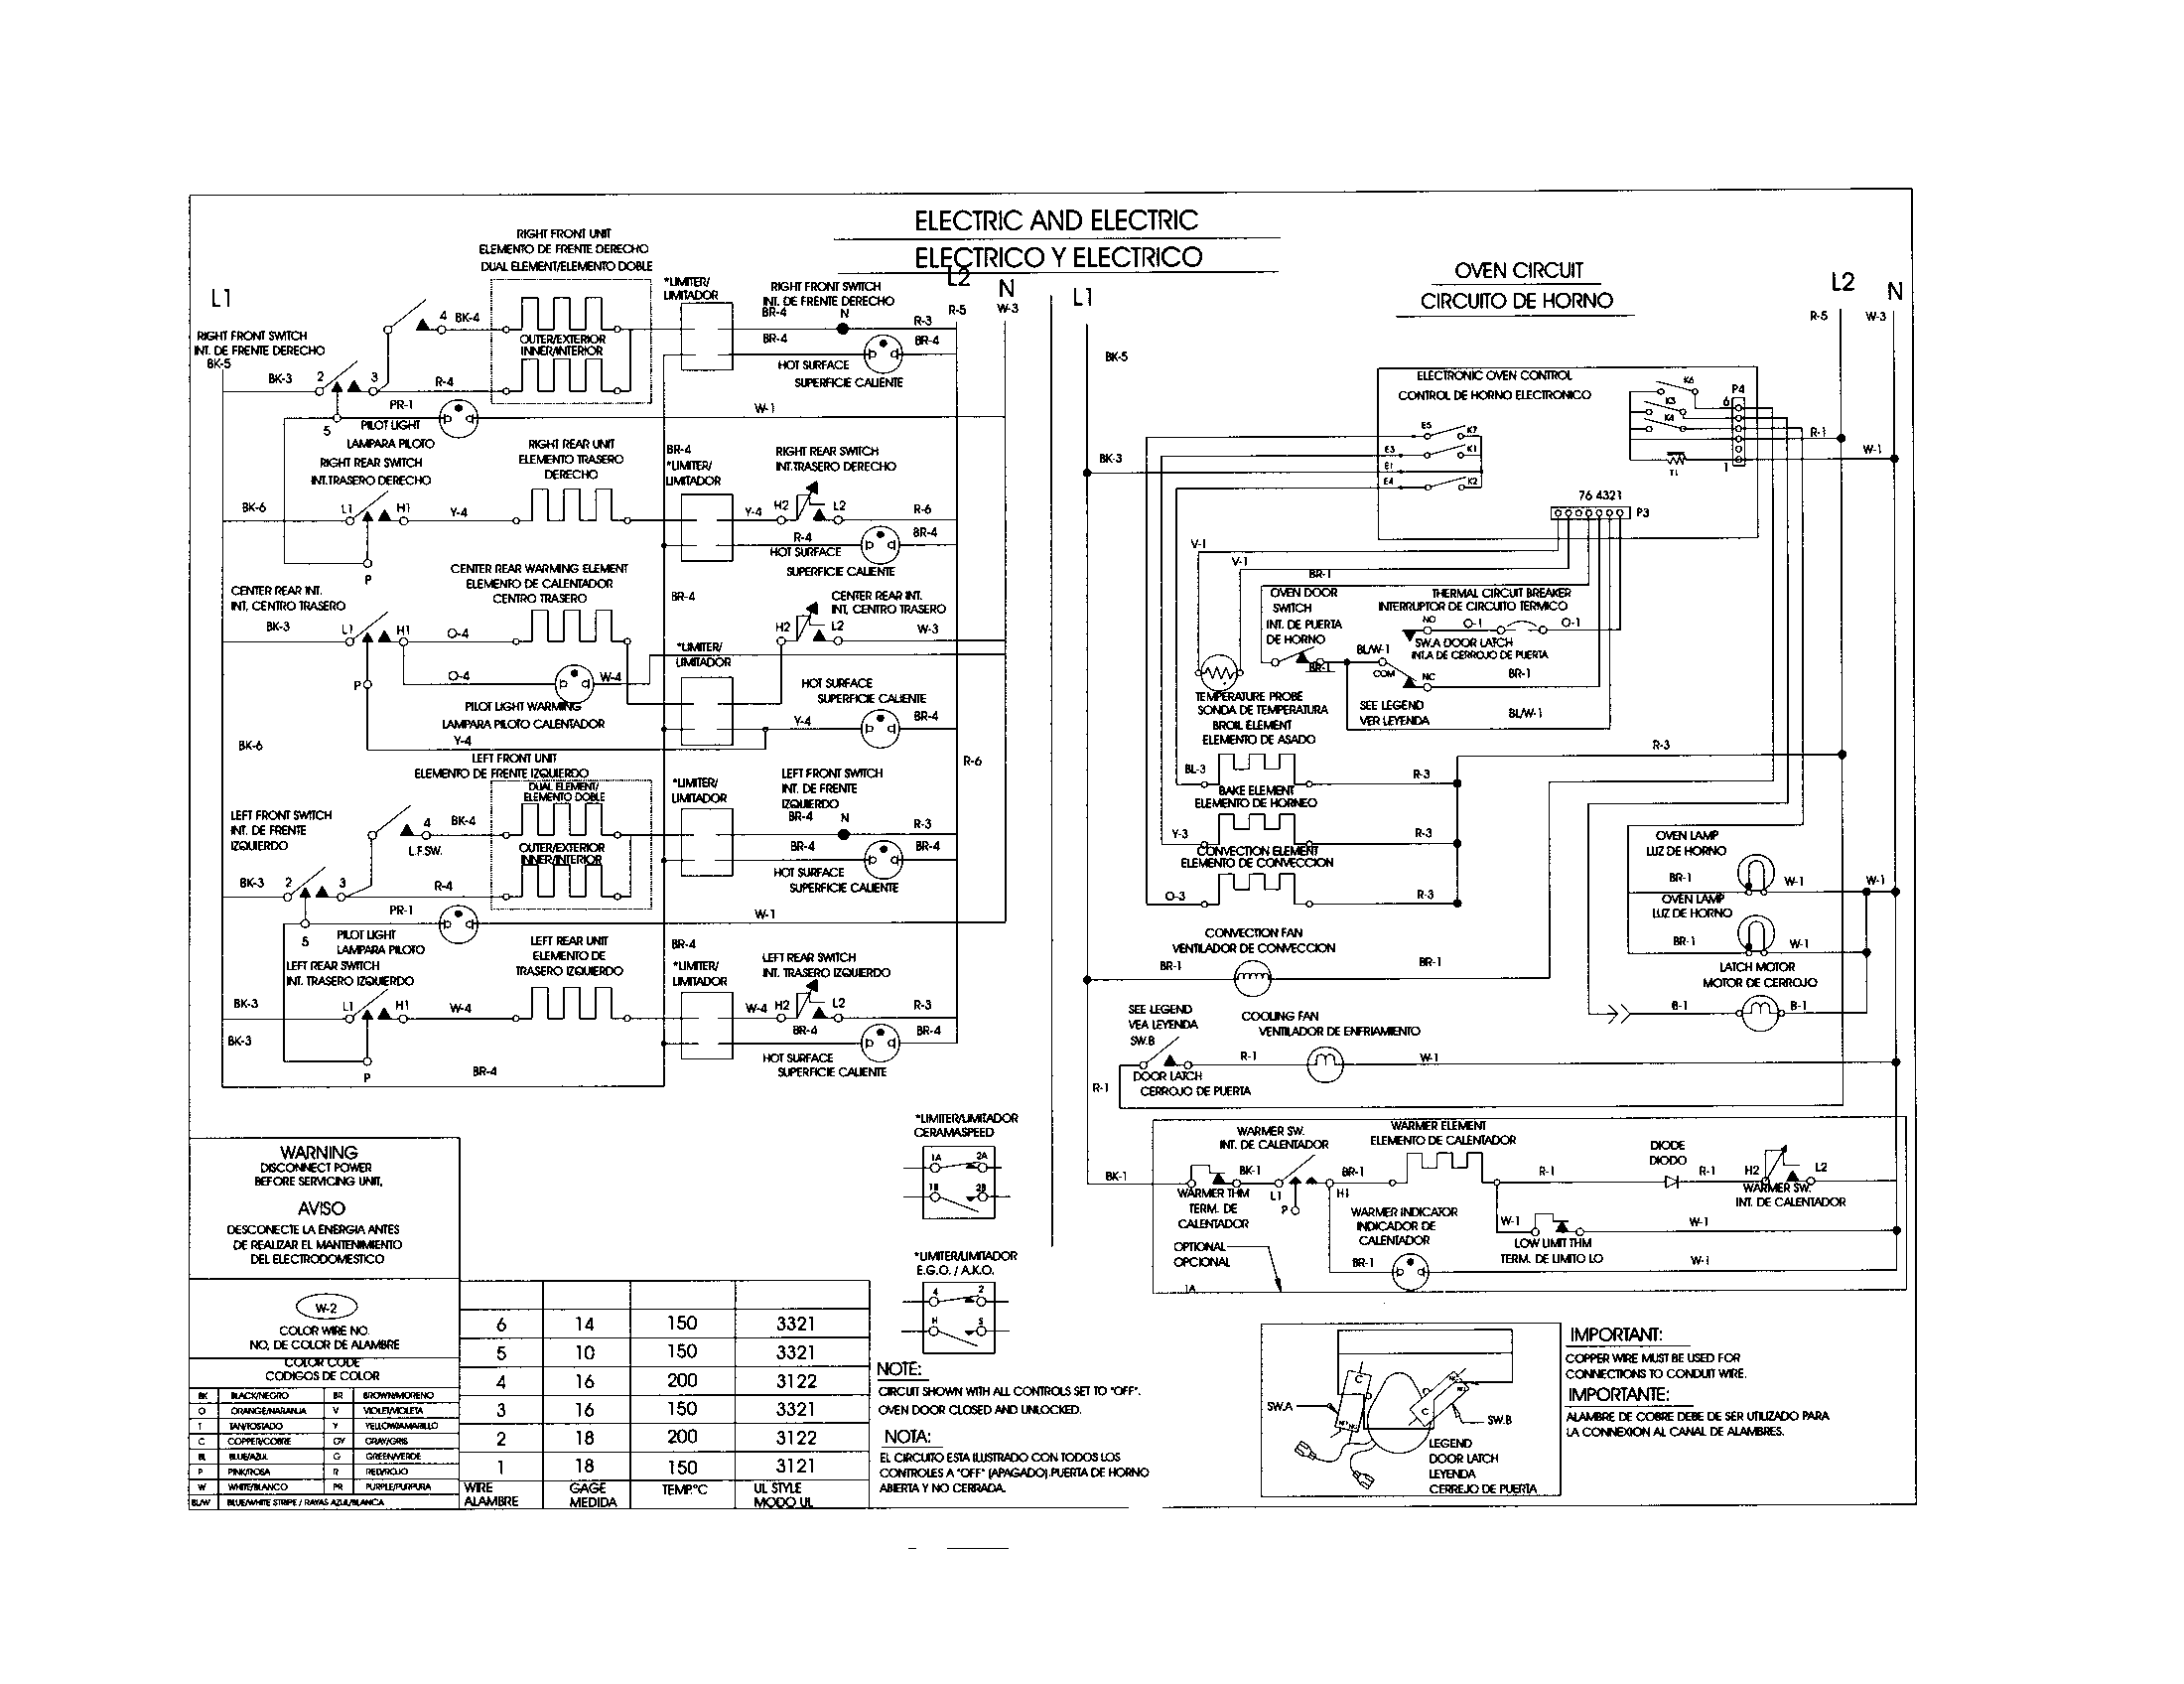 Wiring Diagram For Kenmore Elite Refrigerator 45 Hard A Stove Free Download Schematic Parts 79046803992 Electric Slide In Range Timer